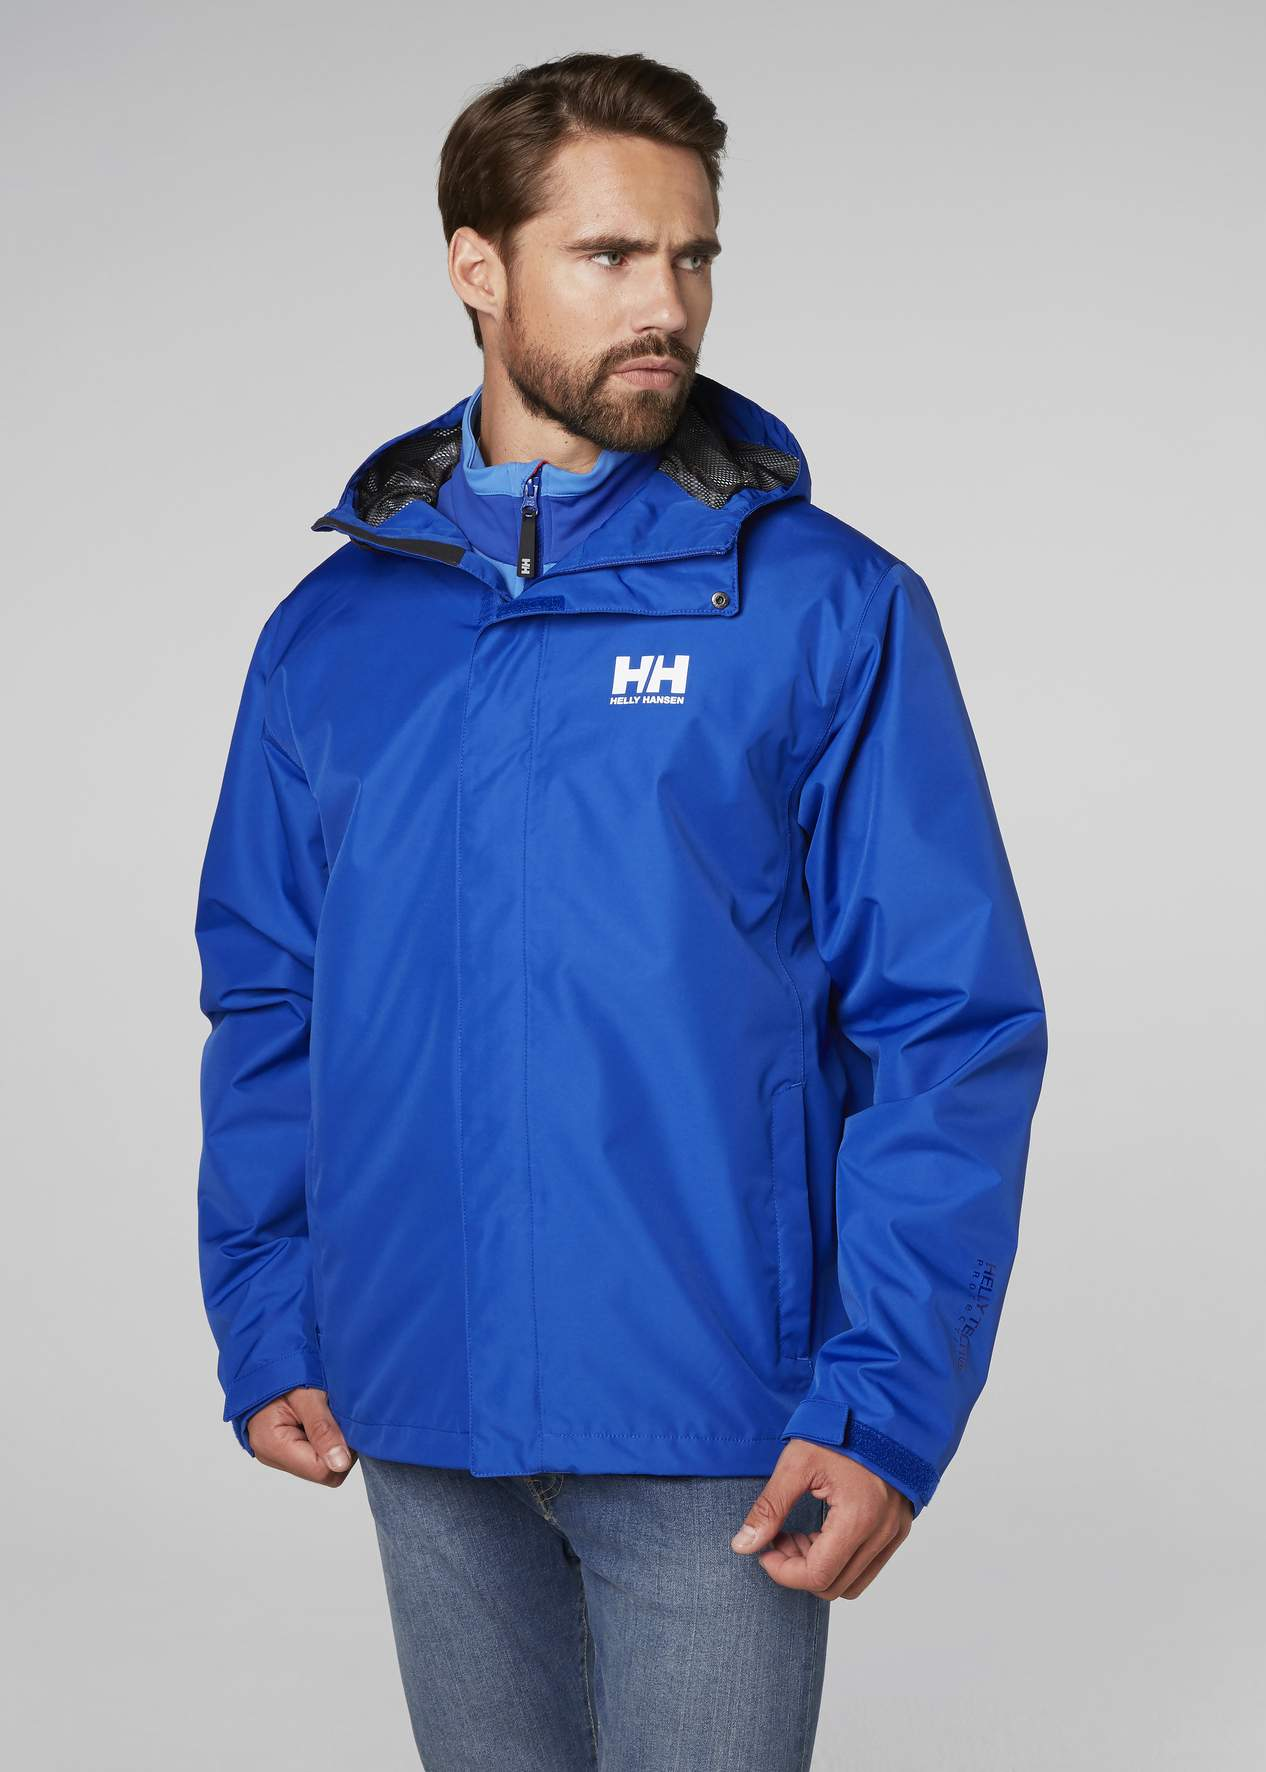 Men s Helly Hansen SEVEN J JACKET-Olympian Blue - Sklep internetowy ... 9211203a7